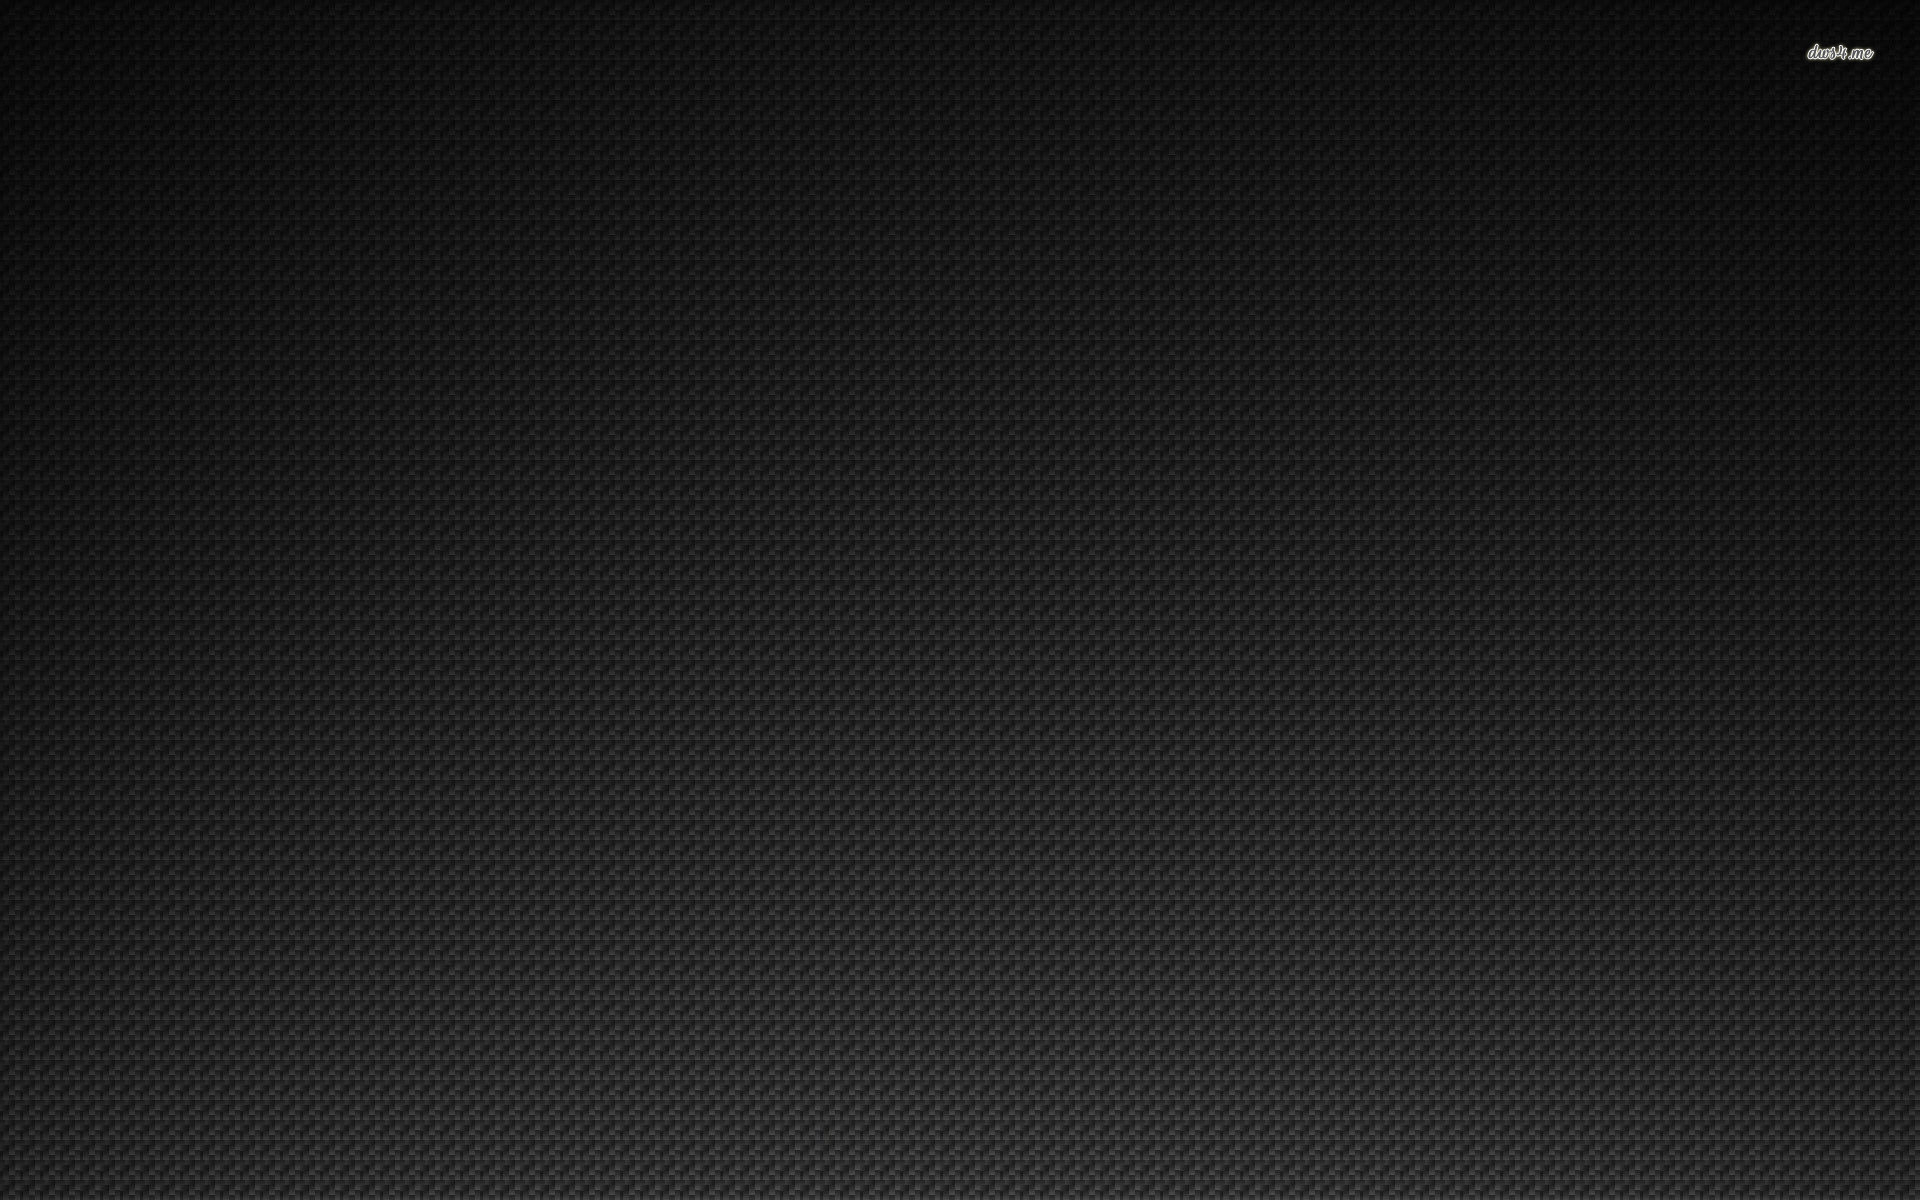 1920x1200 Carbon fiber wallpaper - Abstract wallpapers - #30284